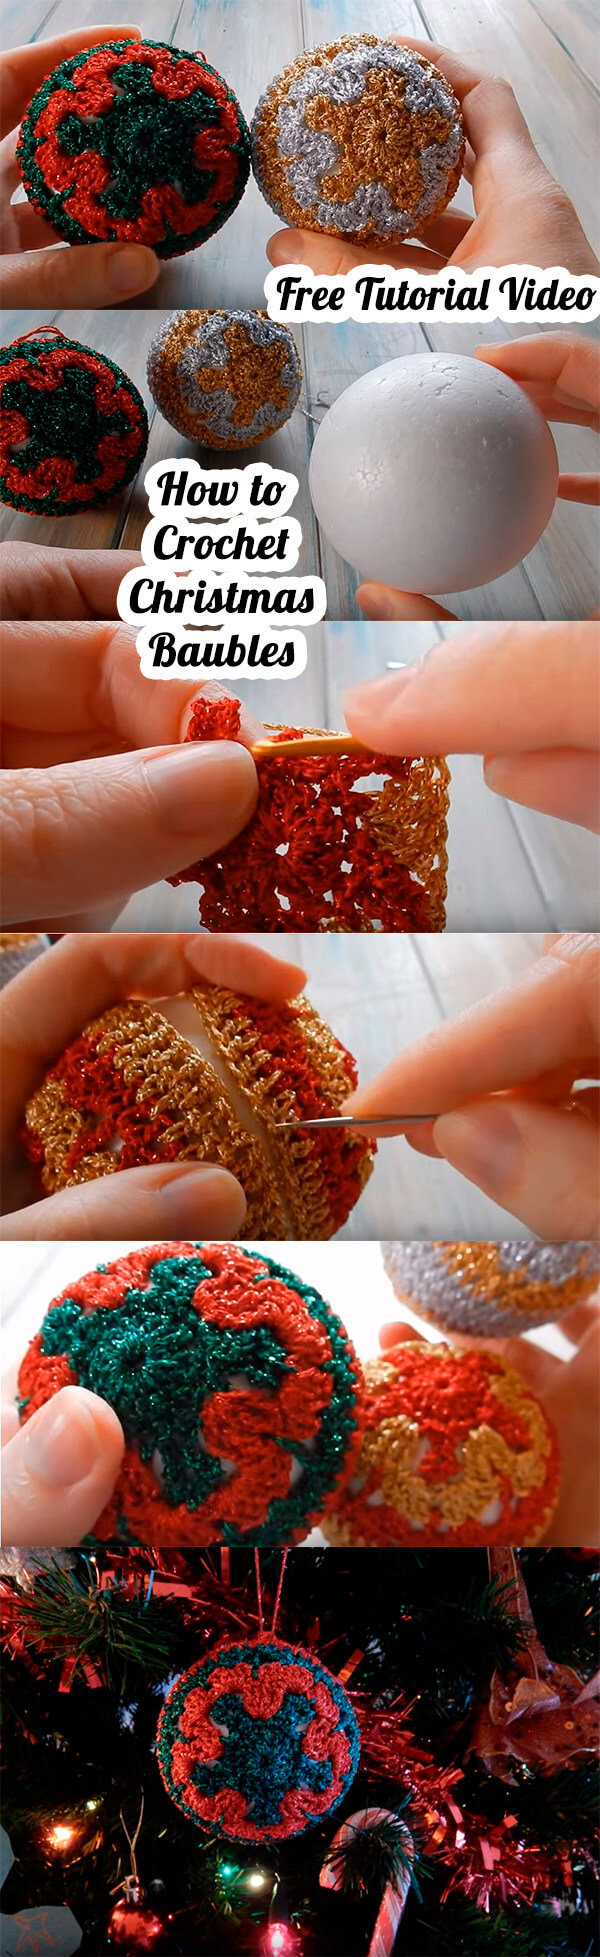 Step by Step How to Crochet Christmas Baubles